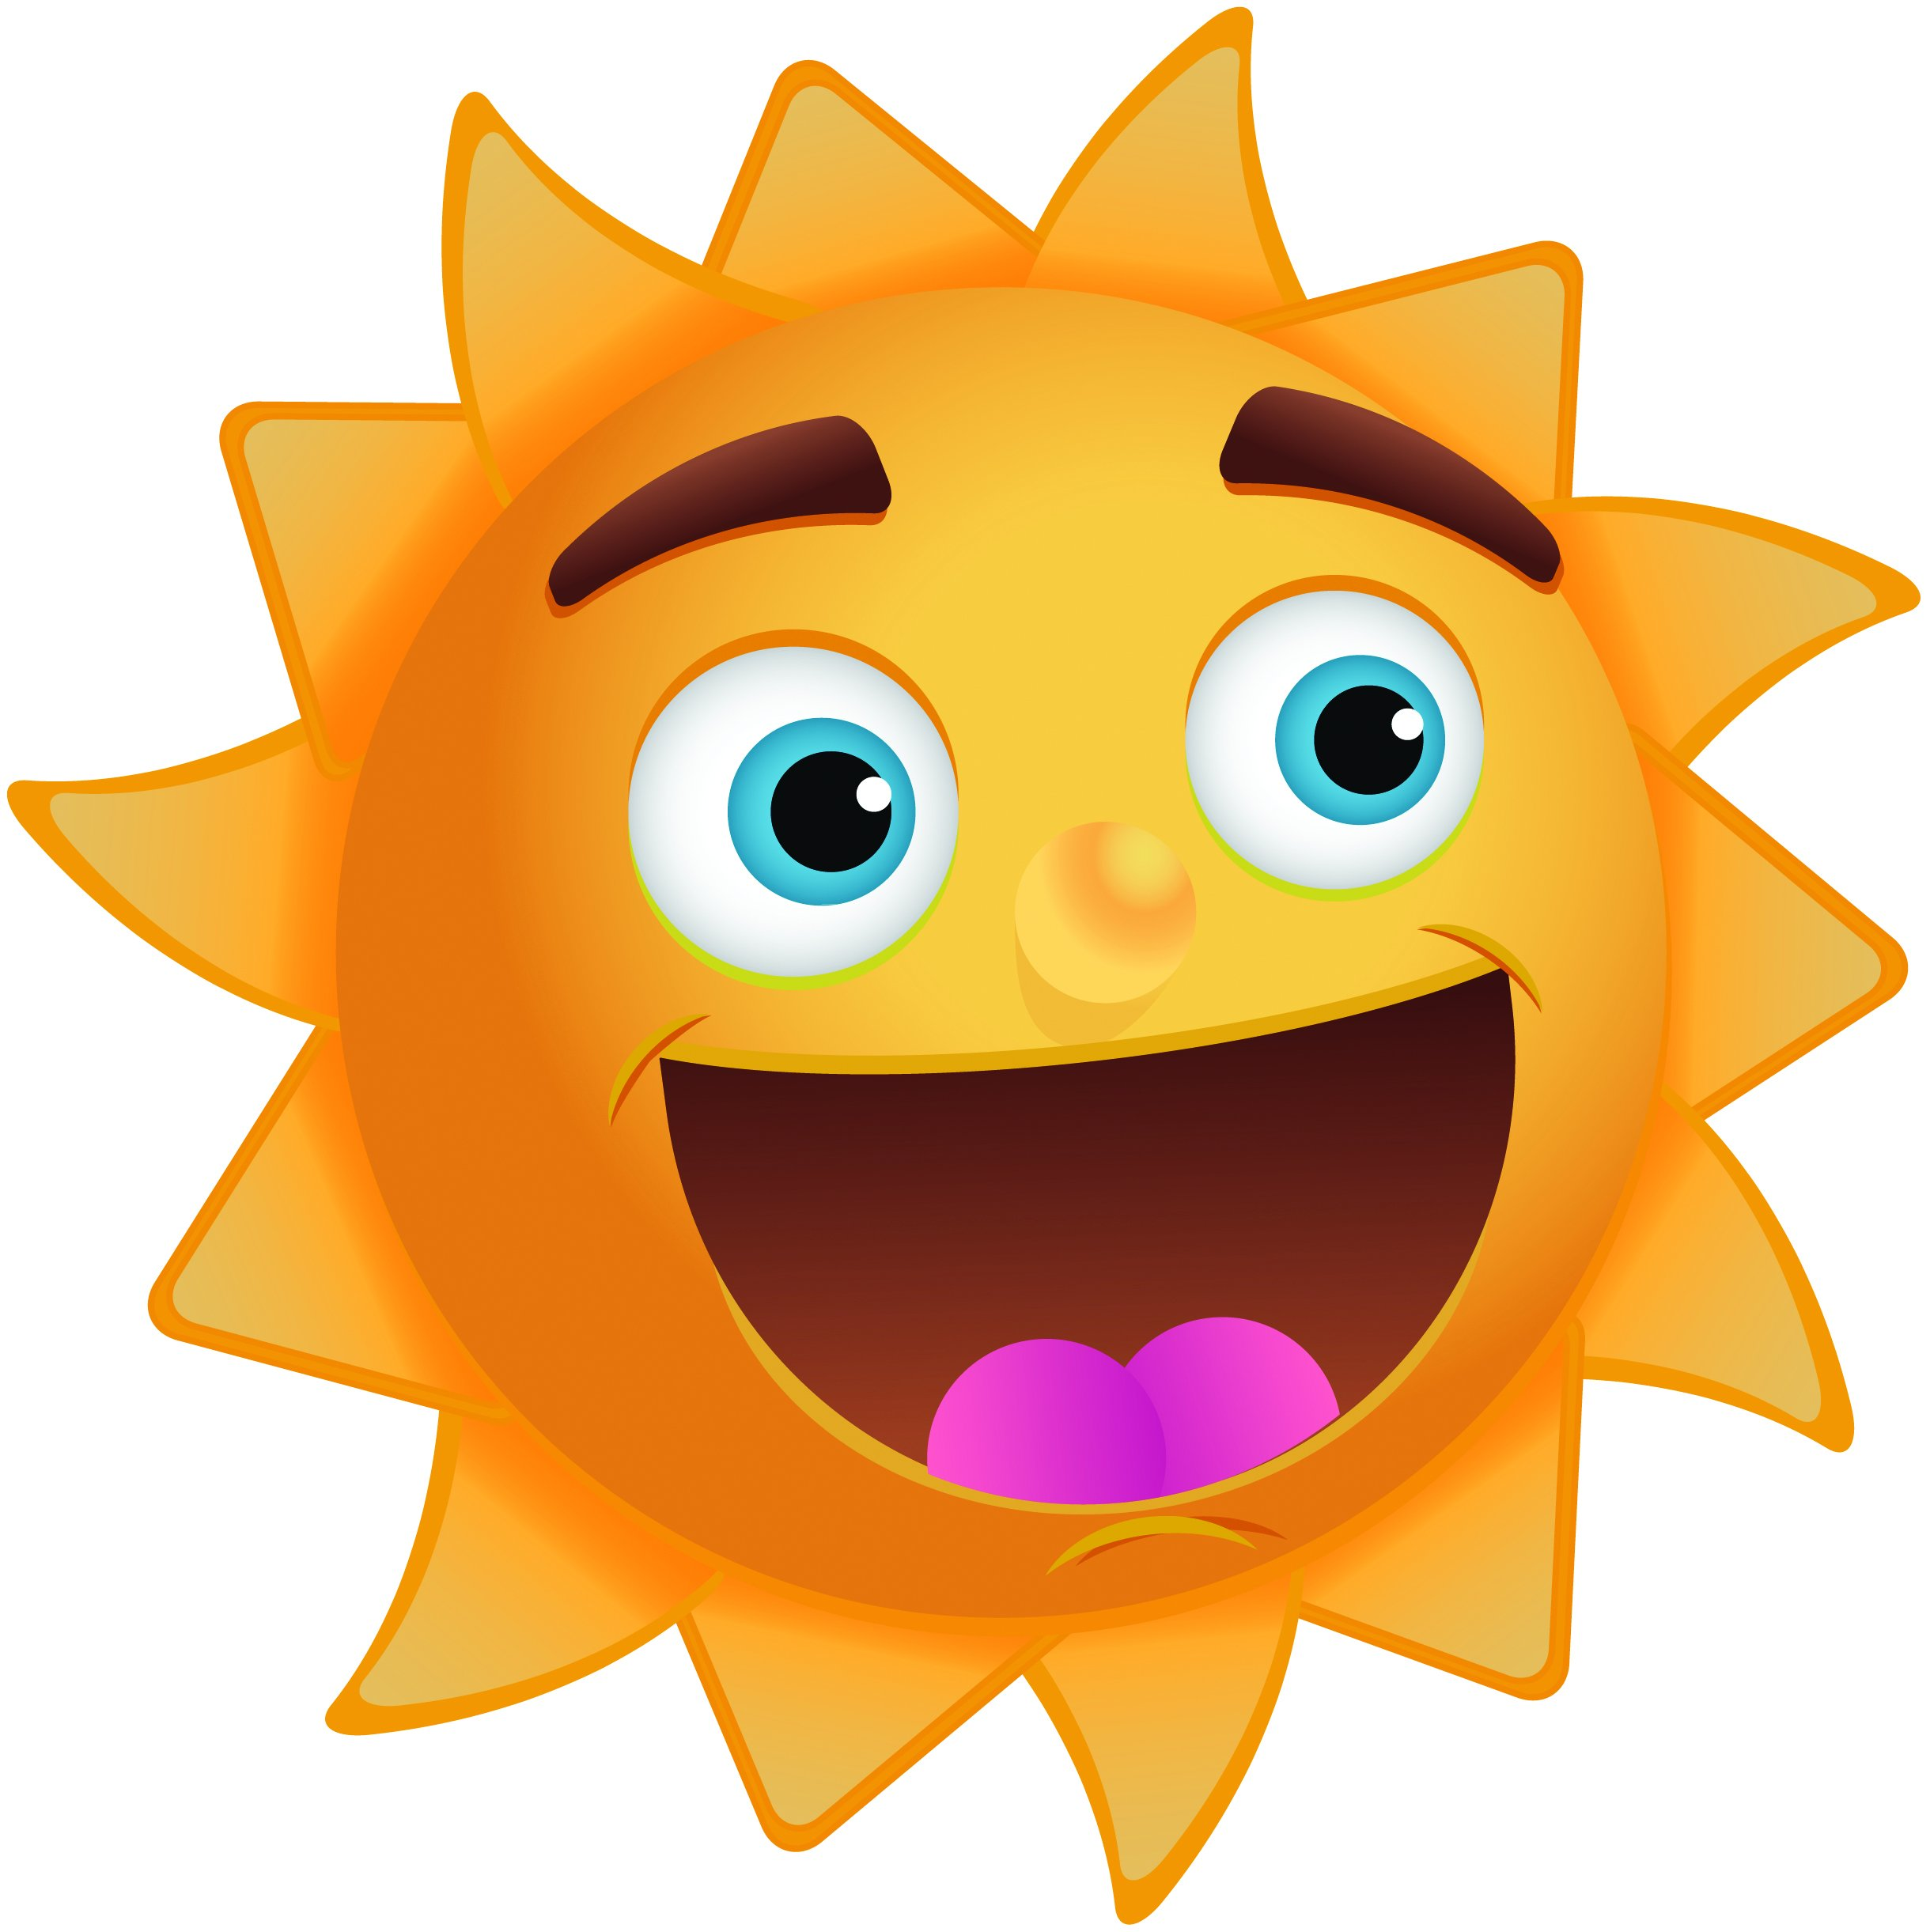 Picture Of A Smiling Sun.